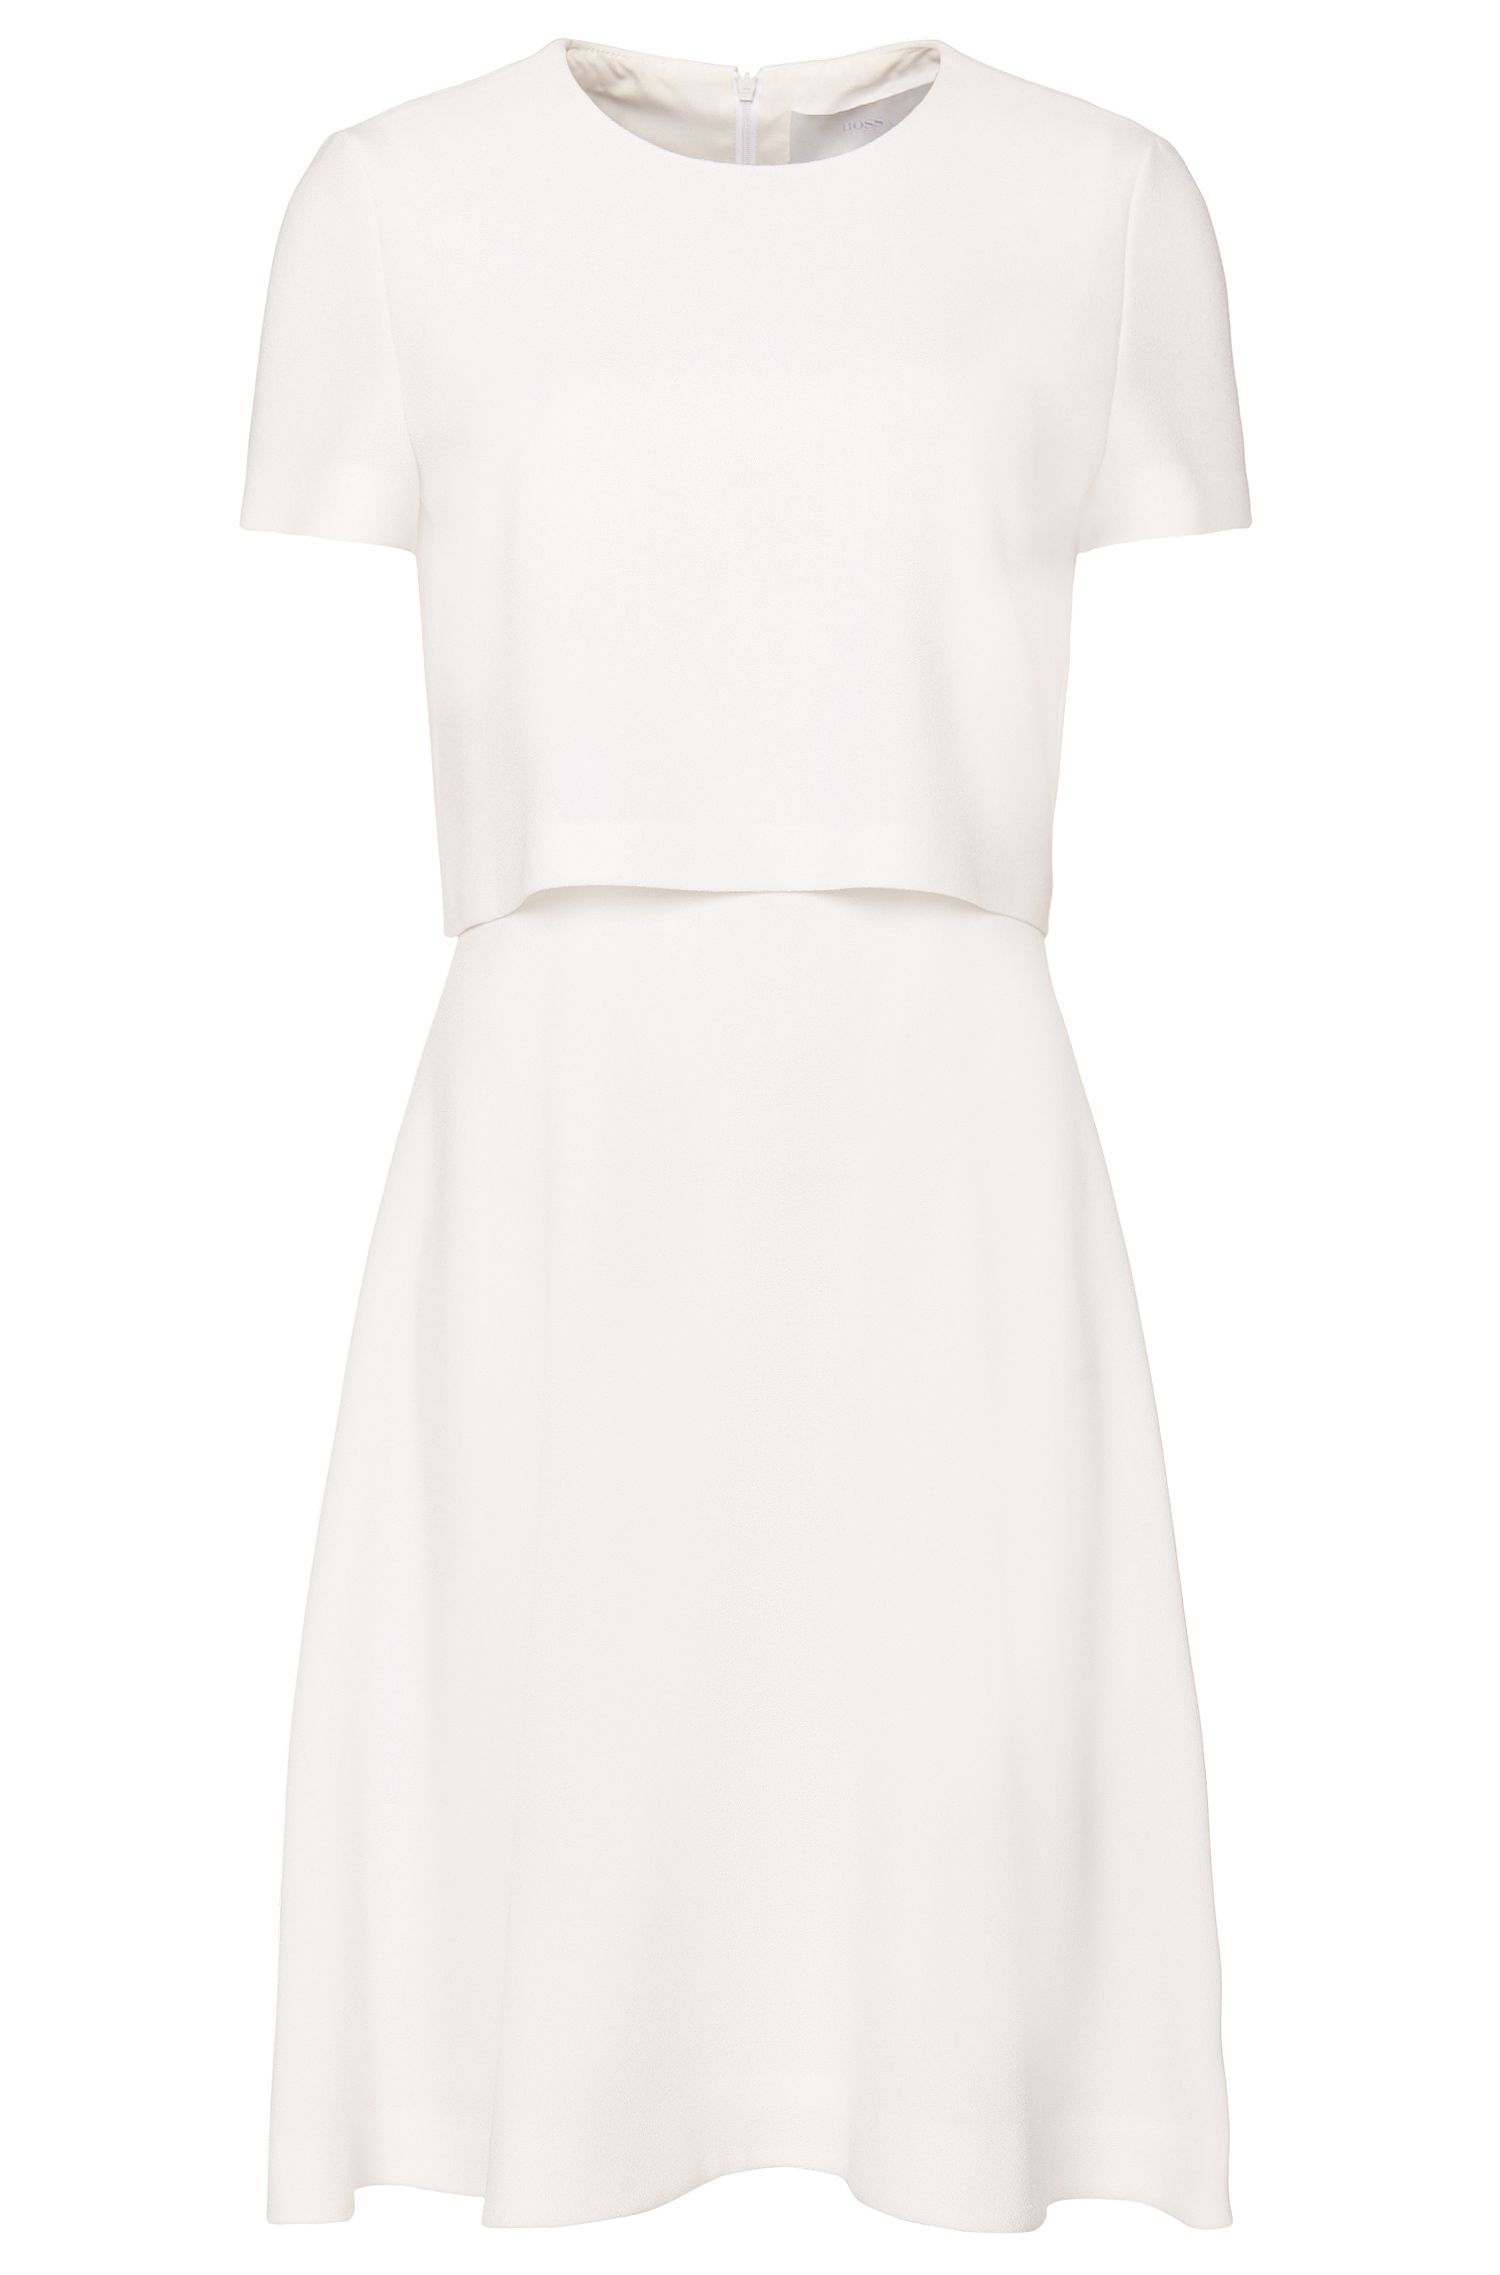 'Dicenda' | Crepe Layered Dress